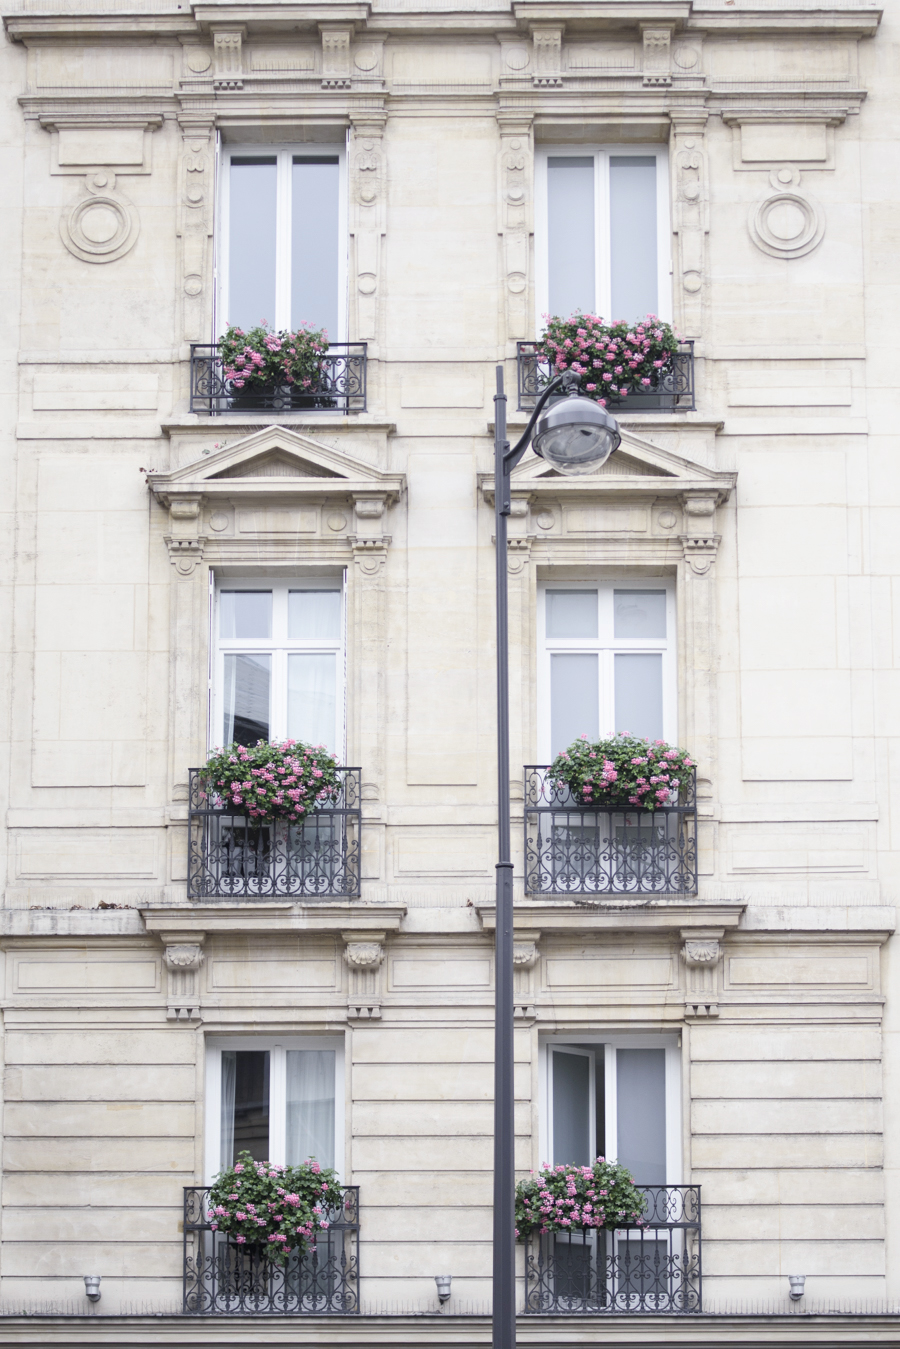 Windows on Paris